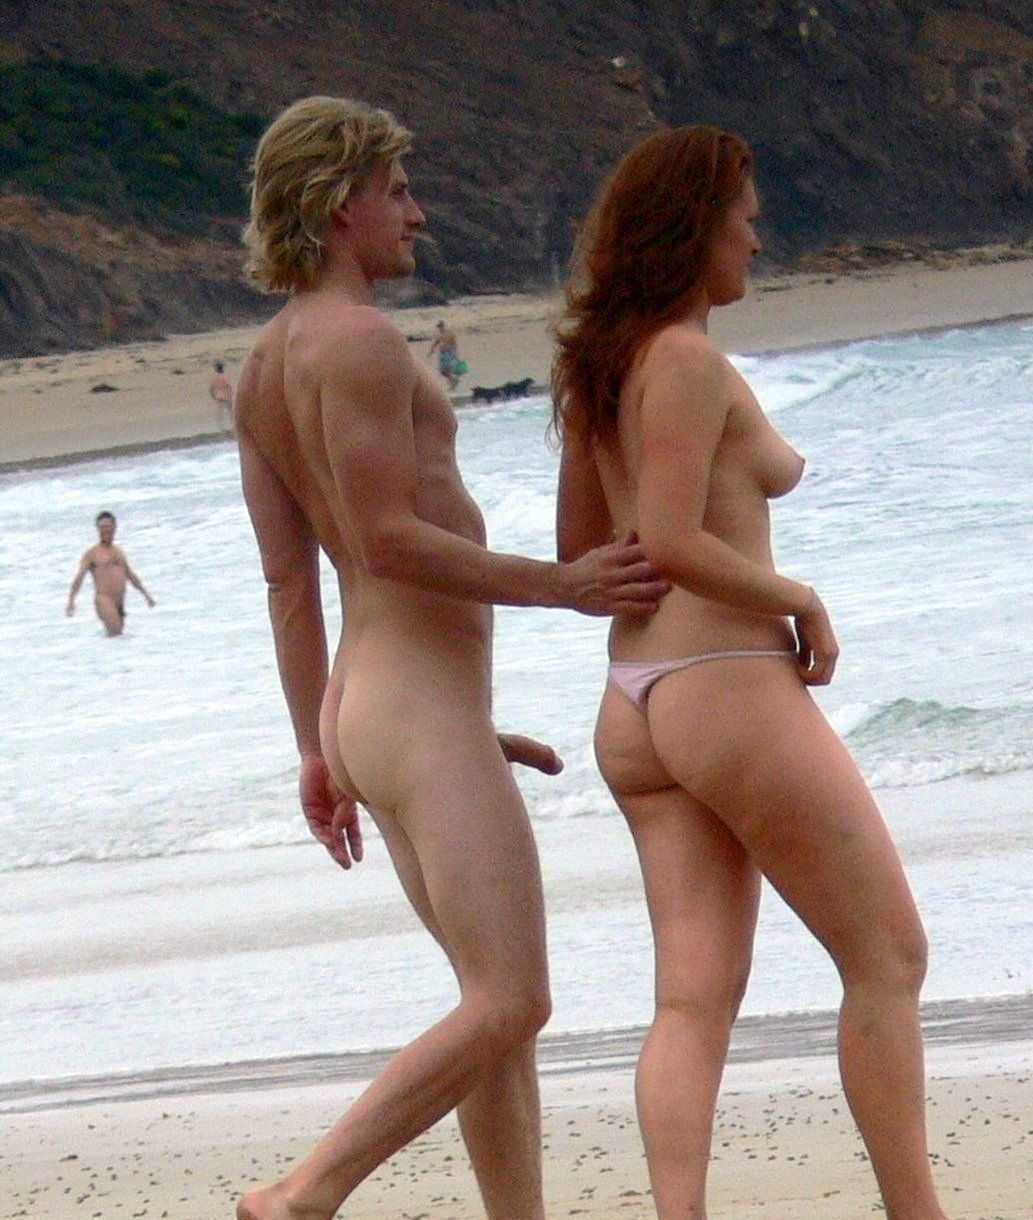 Penis beach girl nude erect